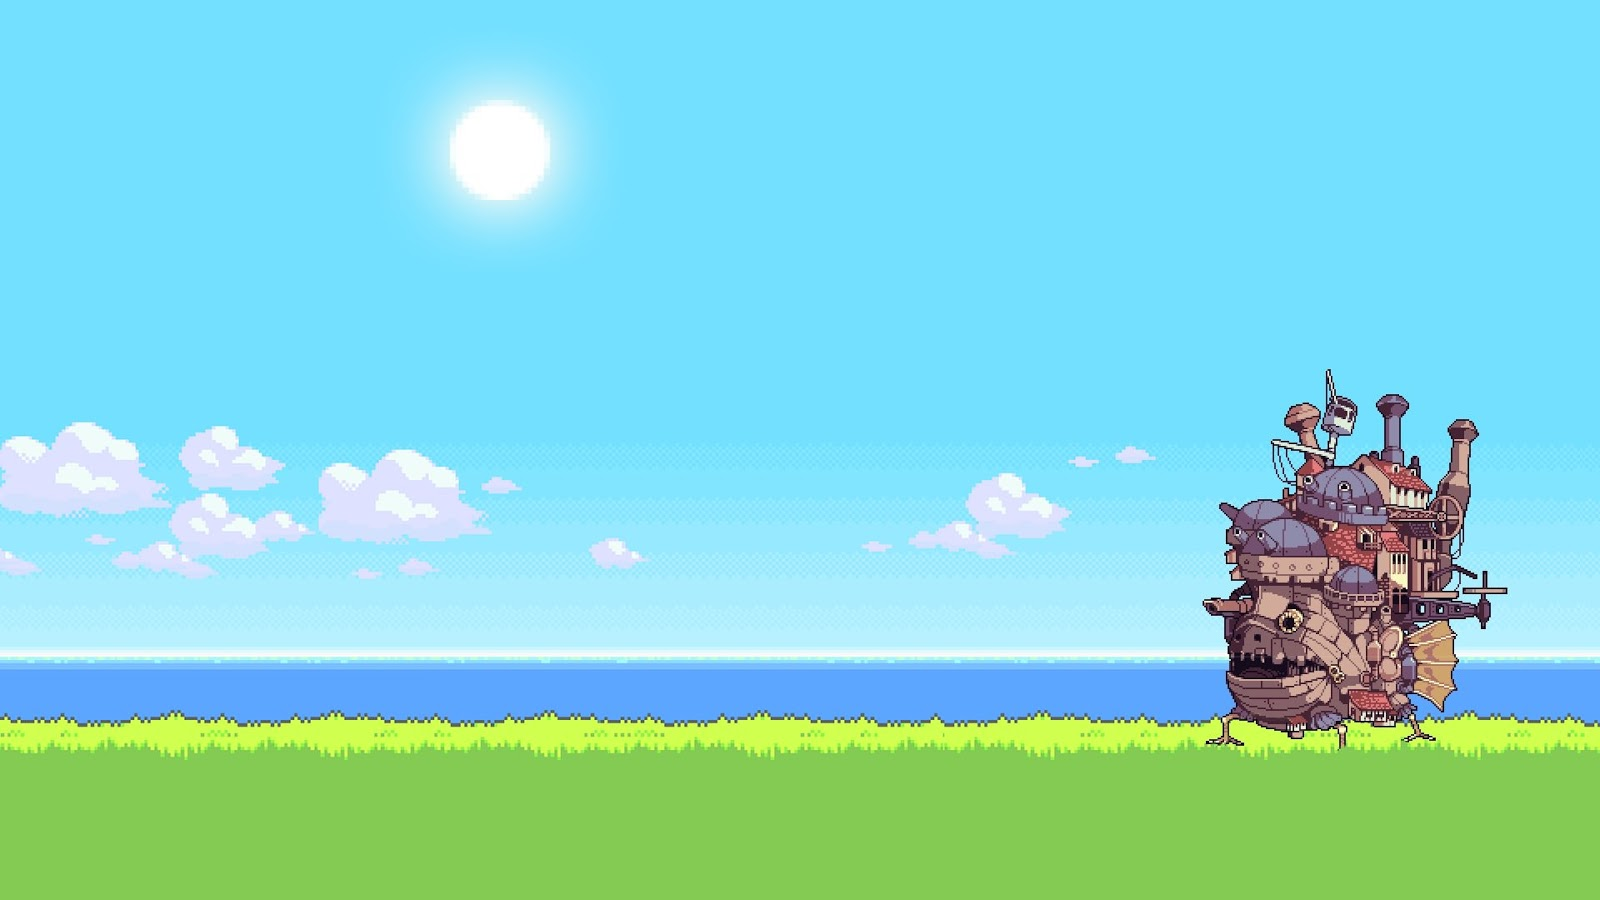 8bit wallpaper of howls moving castle